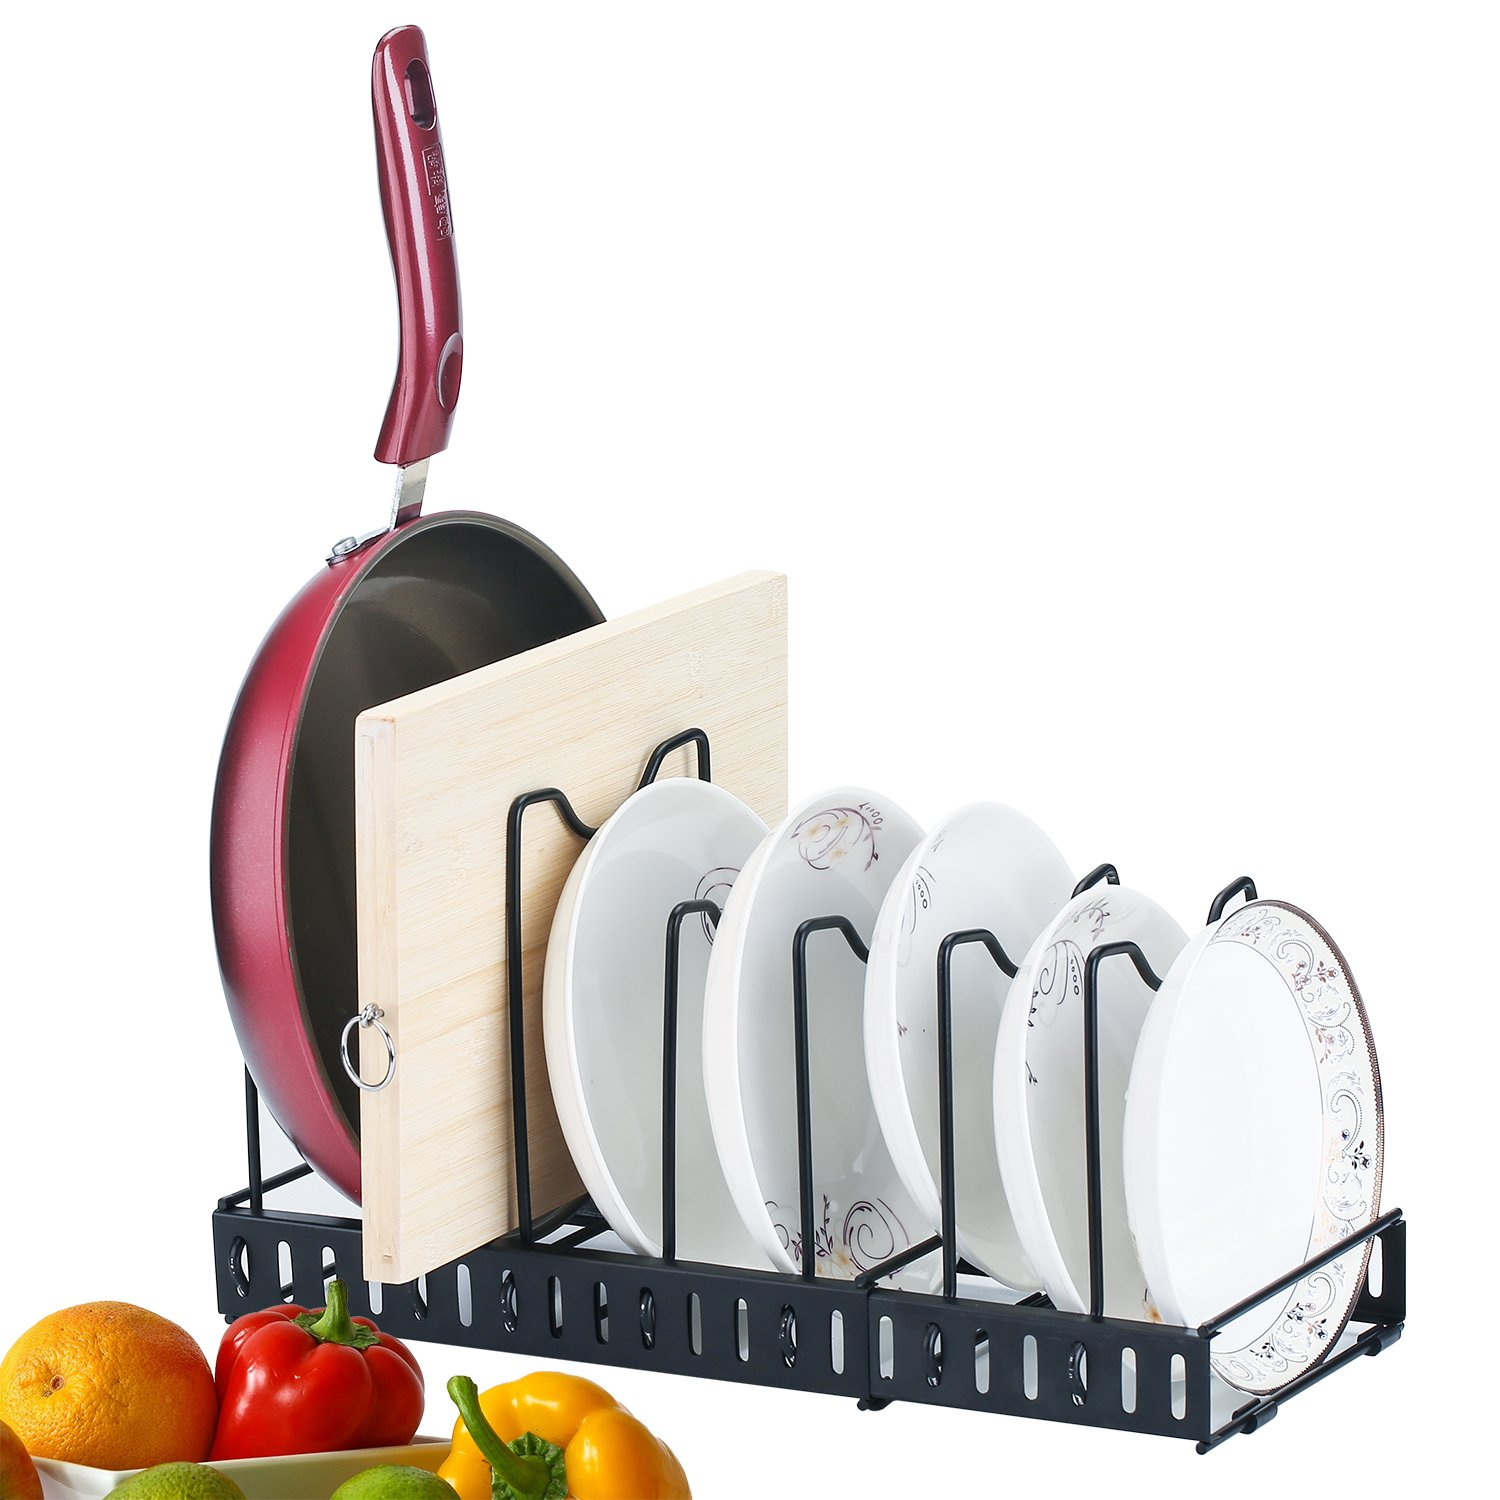 Expandable Kitchen Pan and Pot Organizer Rack: Stores 7+, Can Be Extended to 21.65'', Total 7 Adjustable Compartments, Pantry Cupboard Bakeware Plate Holder,black